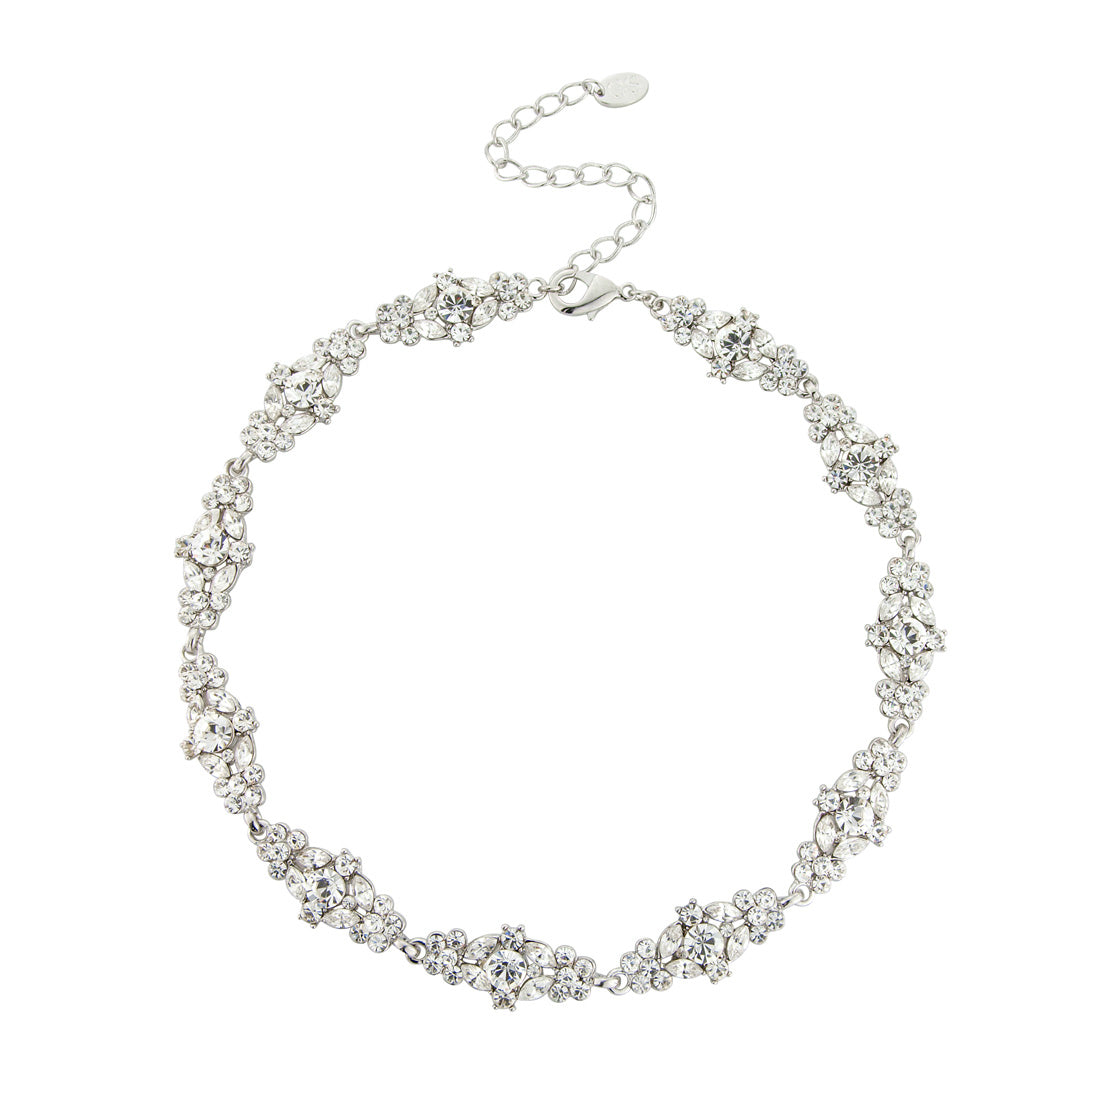 Bejewelled Starlet Bridal Collar Necklace